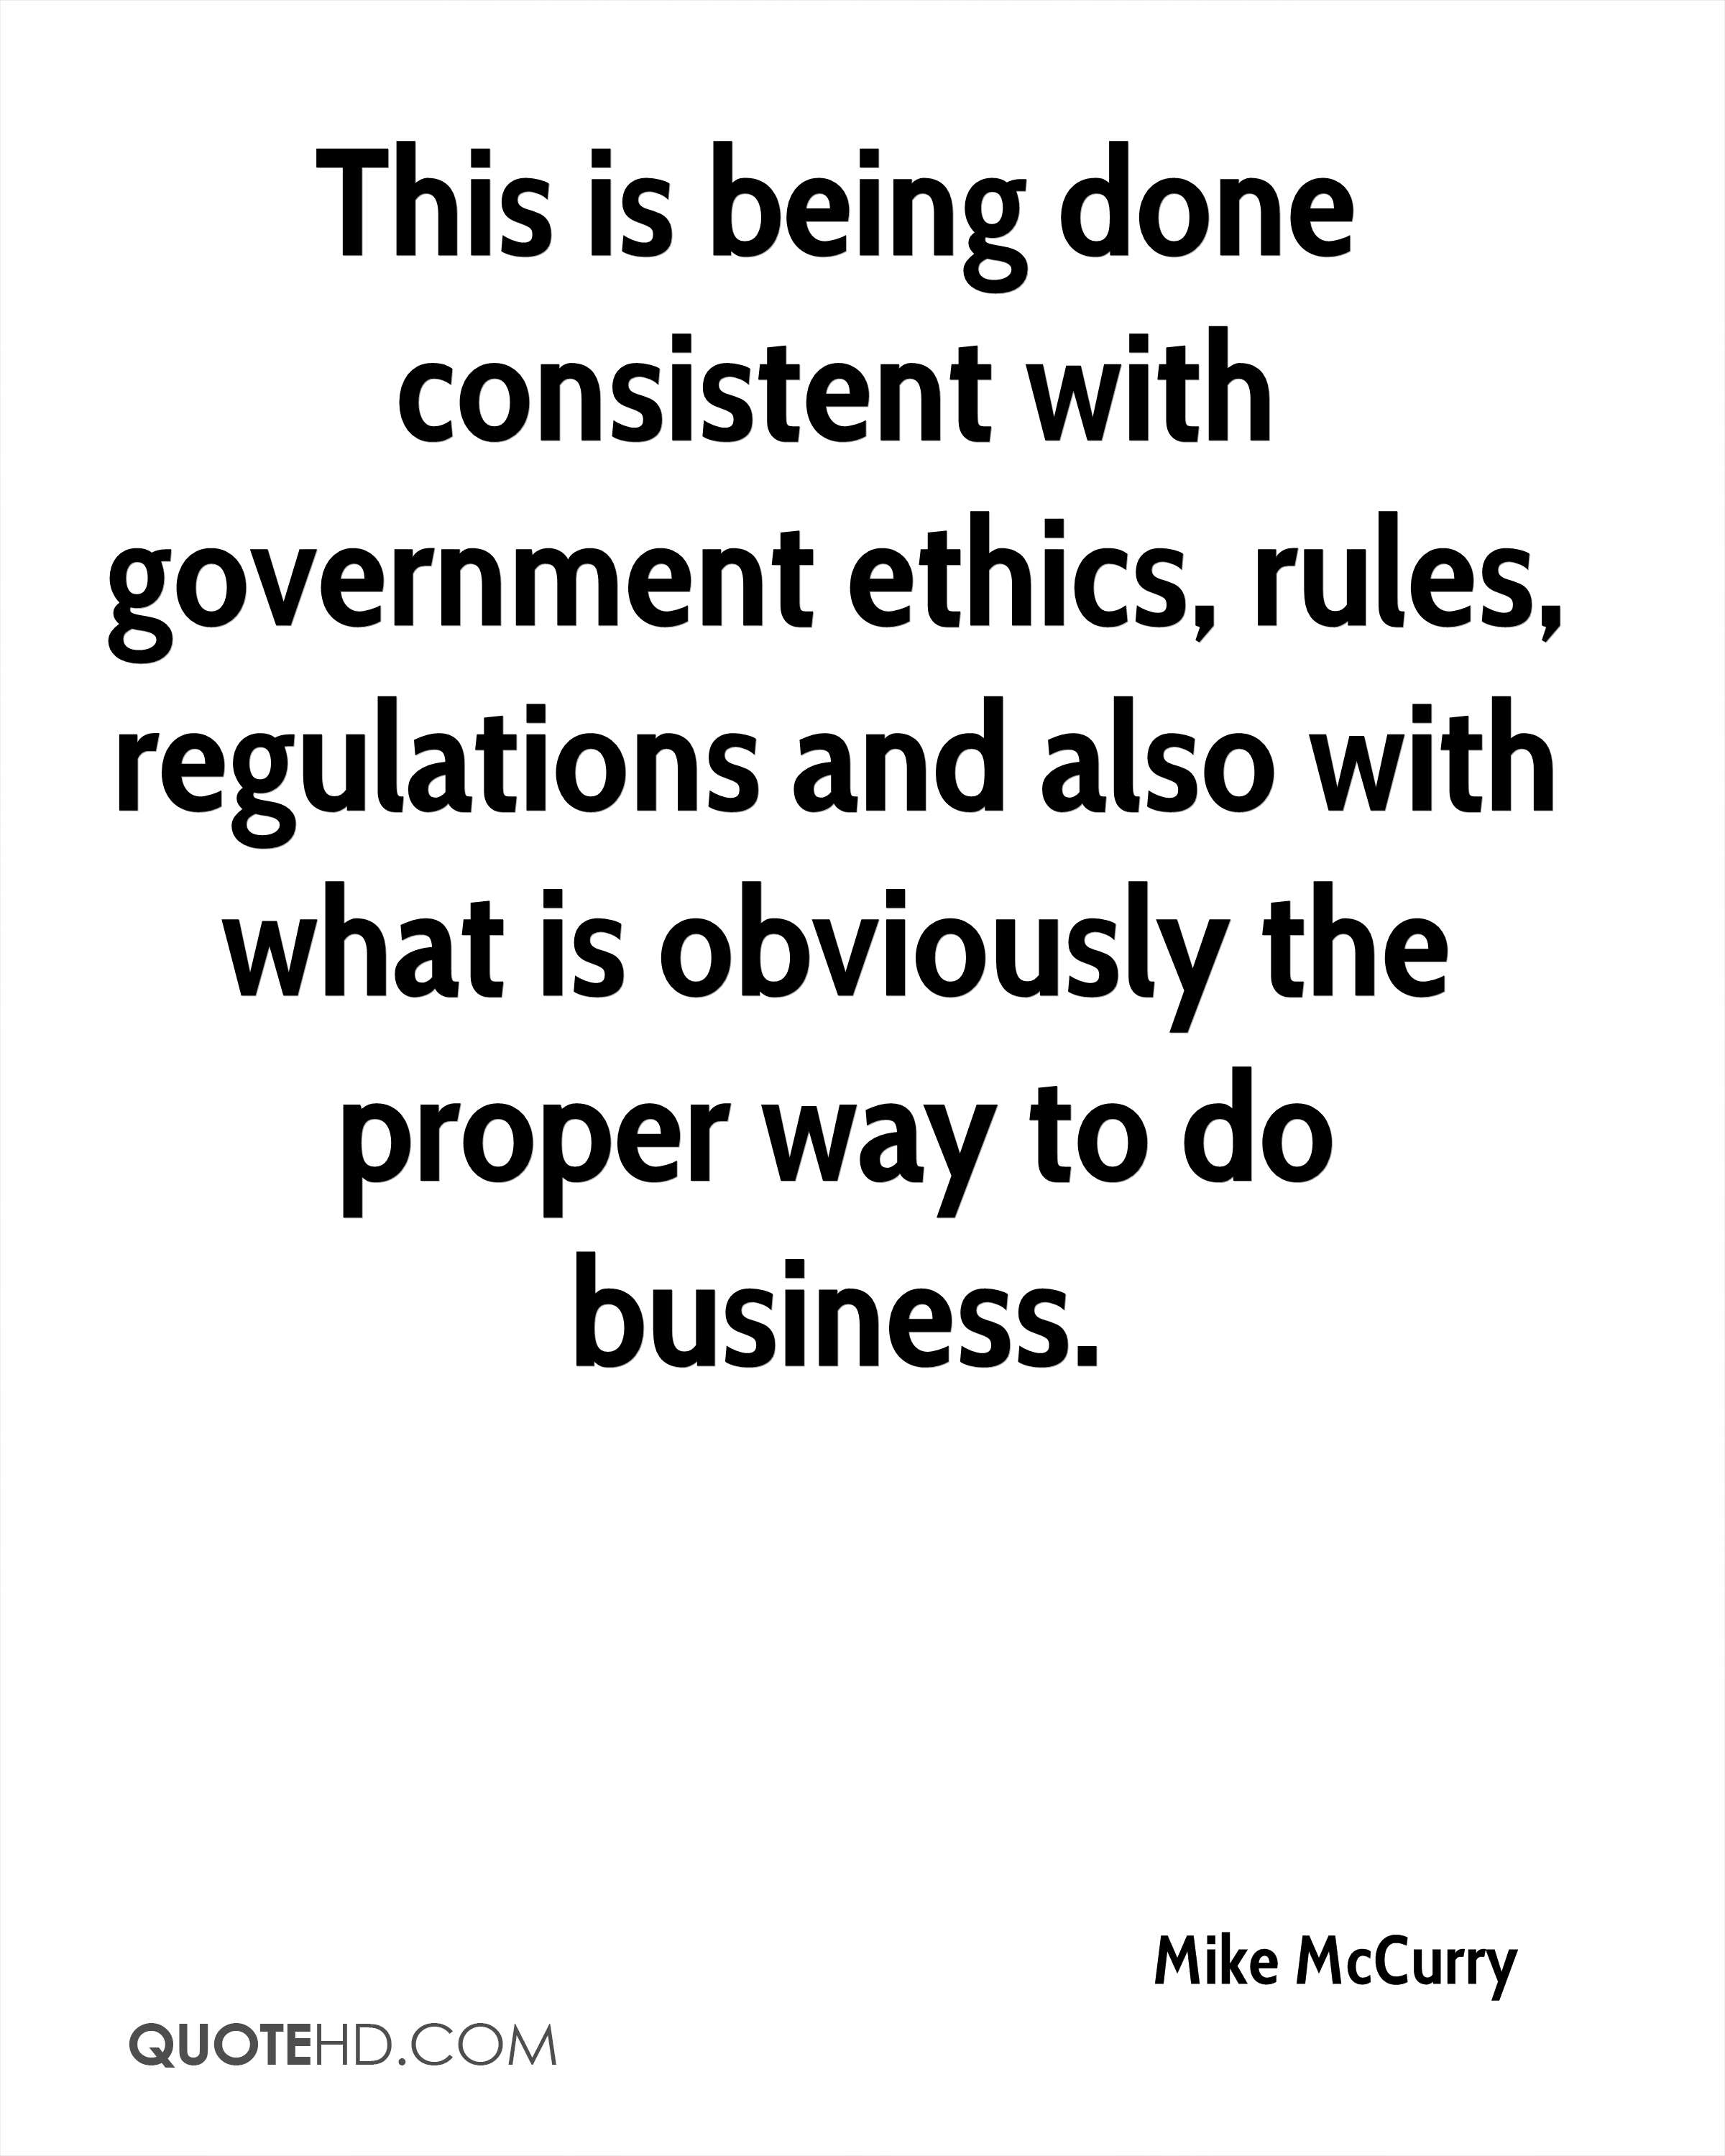 This is being done consistent with government ethics, rules, regulations and also with what is obviously the proper way to do business.